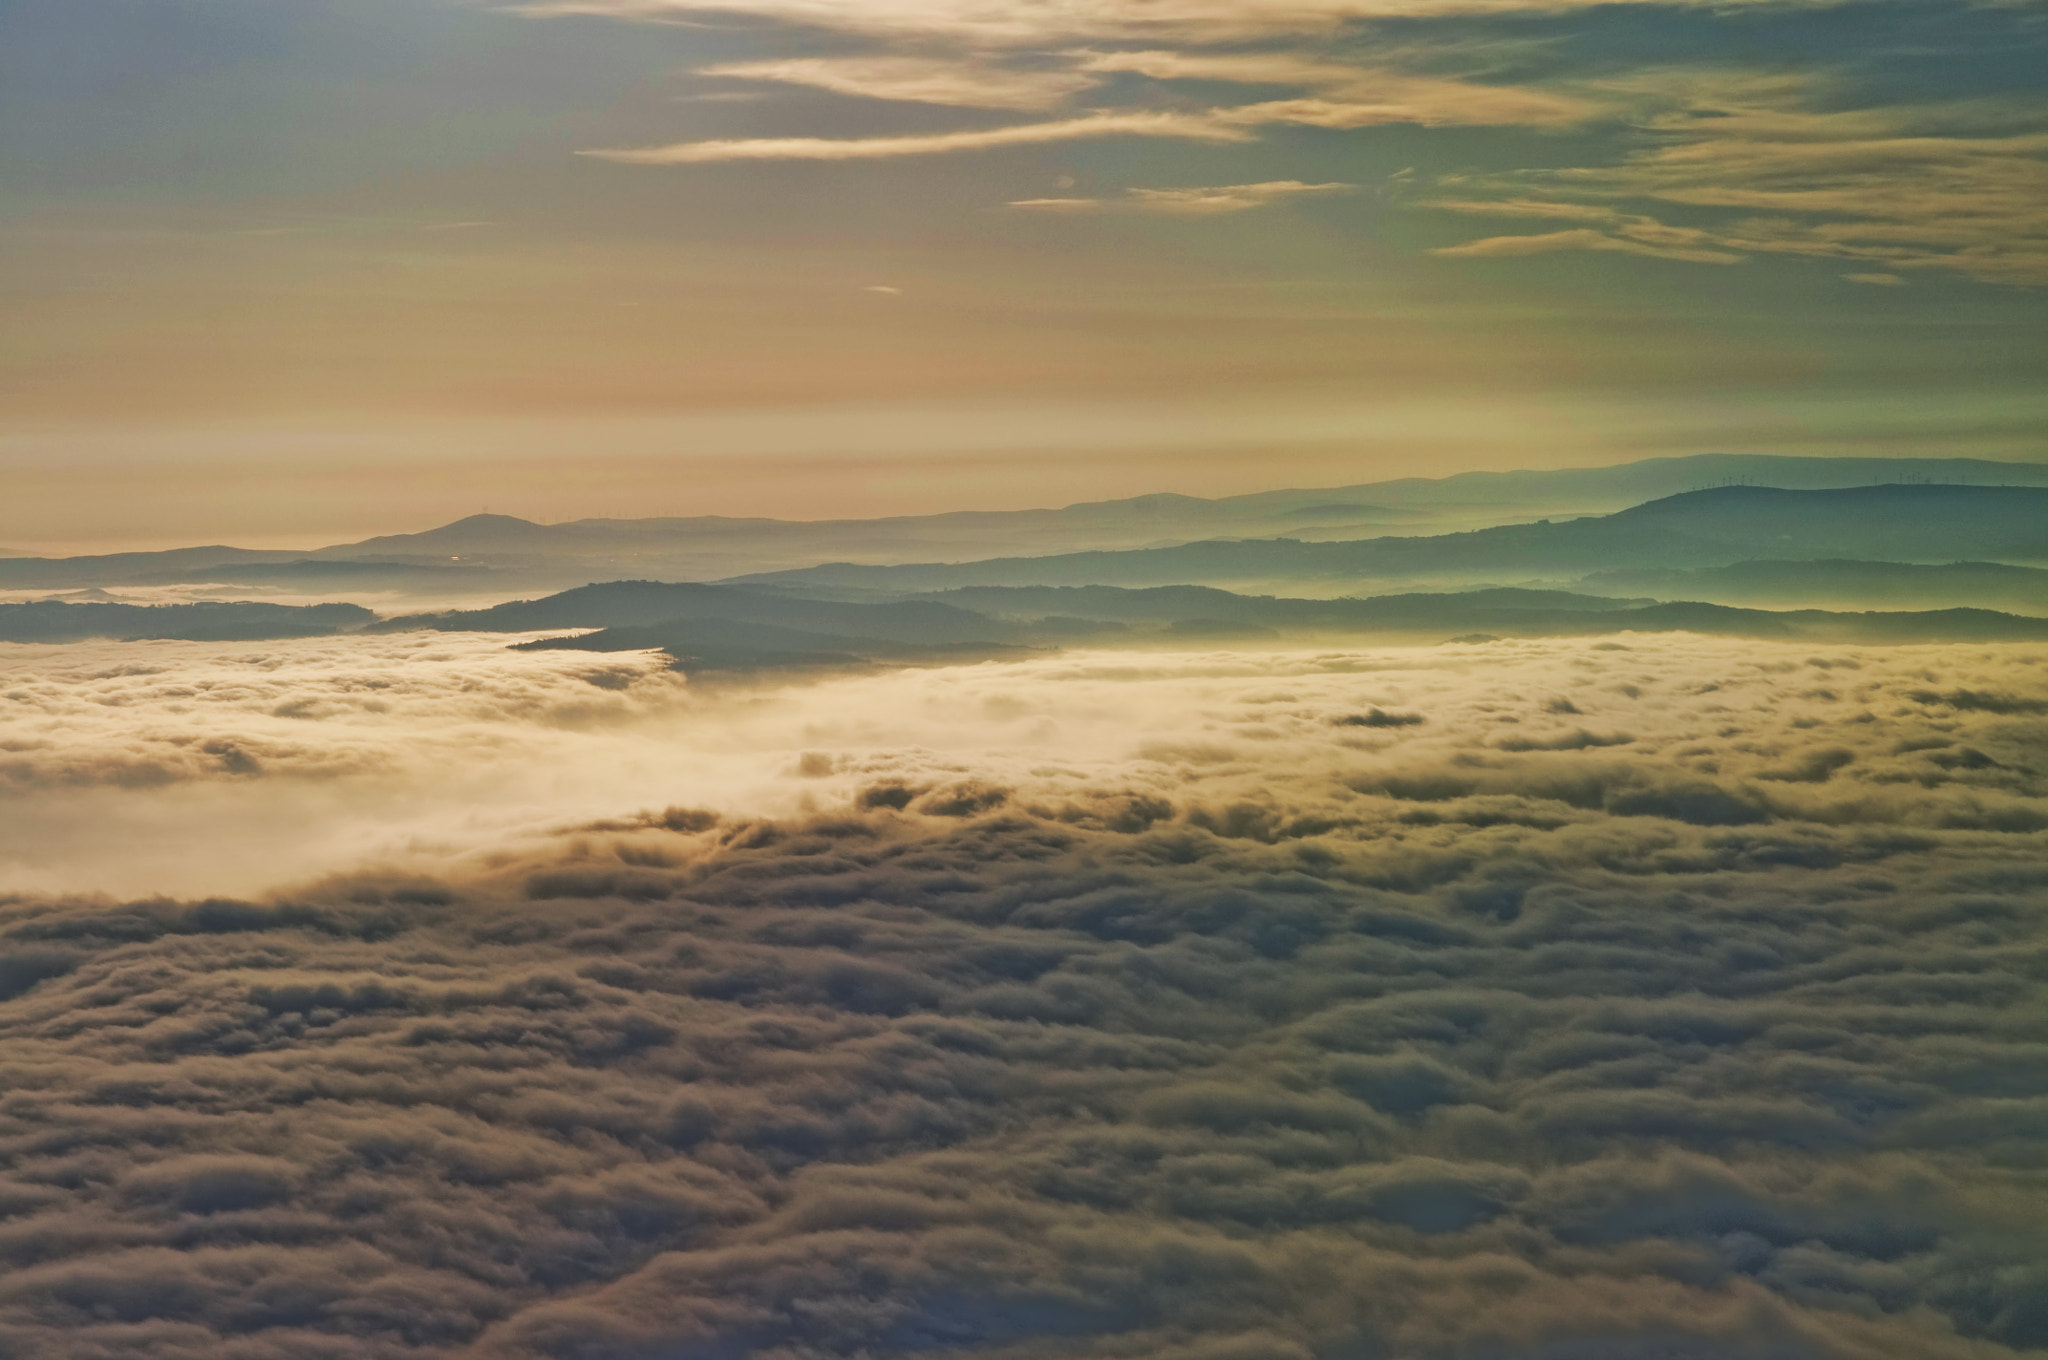 Photograph Sea of clouds by Dominic Royé on 500px